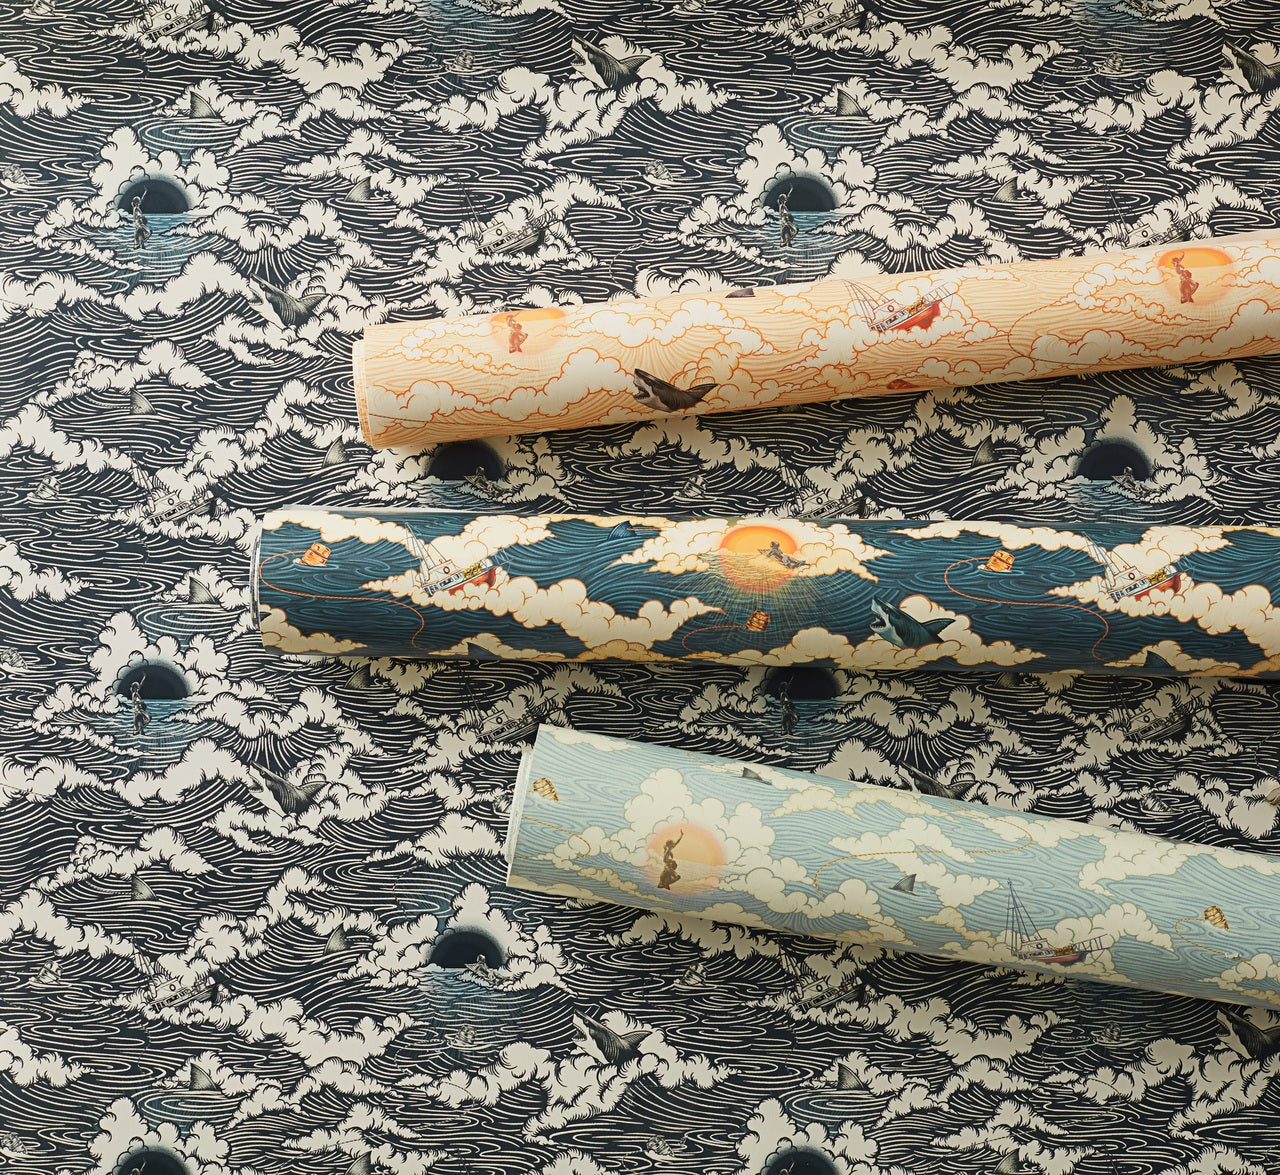 Amity Sunset pattern inspired by Jaws   Universal + Hygge & West wallpaper and shower curtain collection